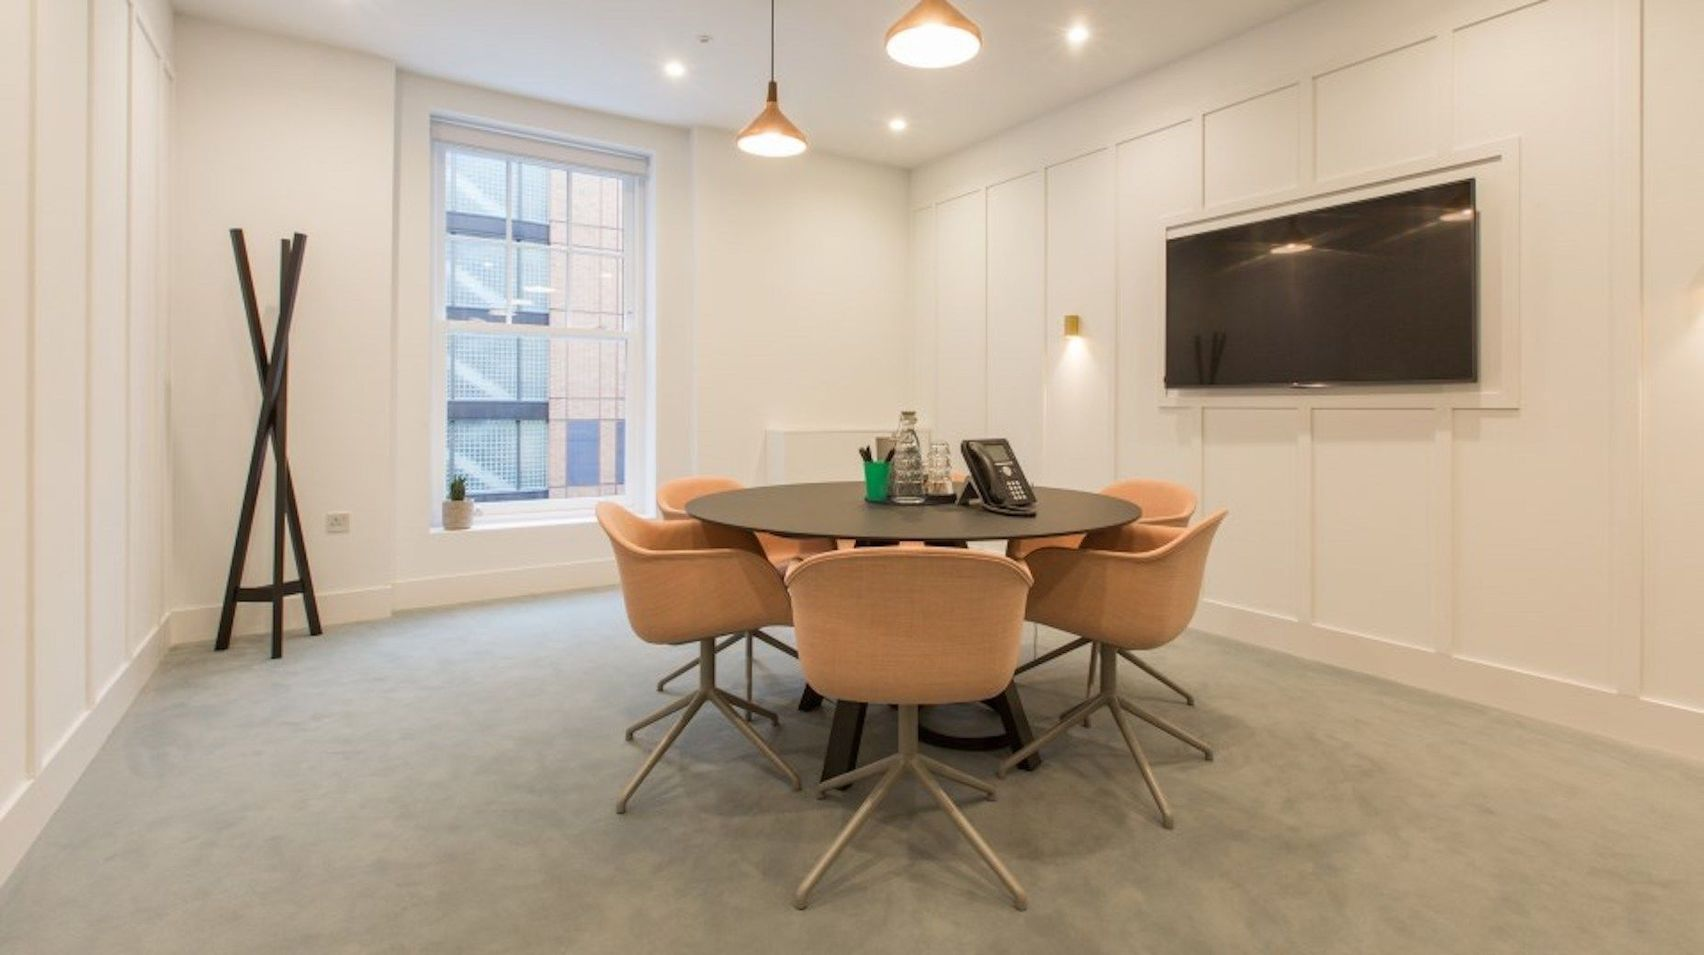 Meeting Room 4, TOG, 91 Wimpole Street